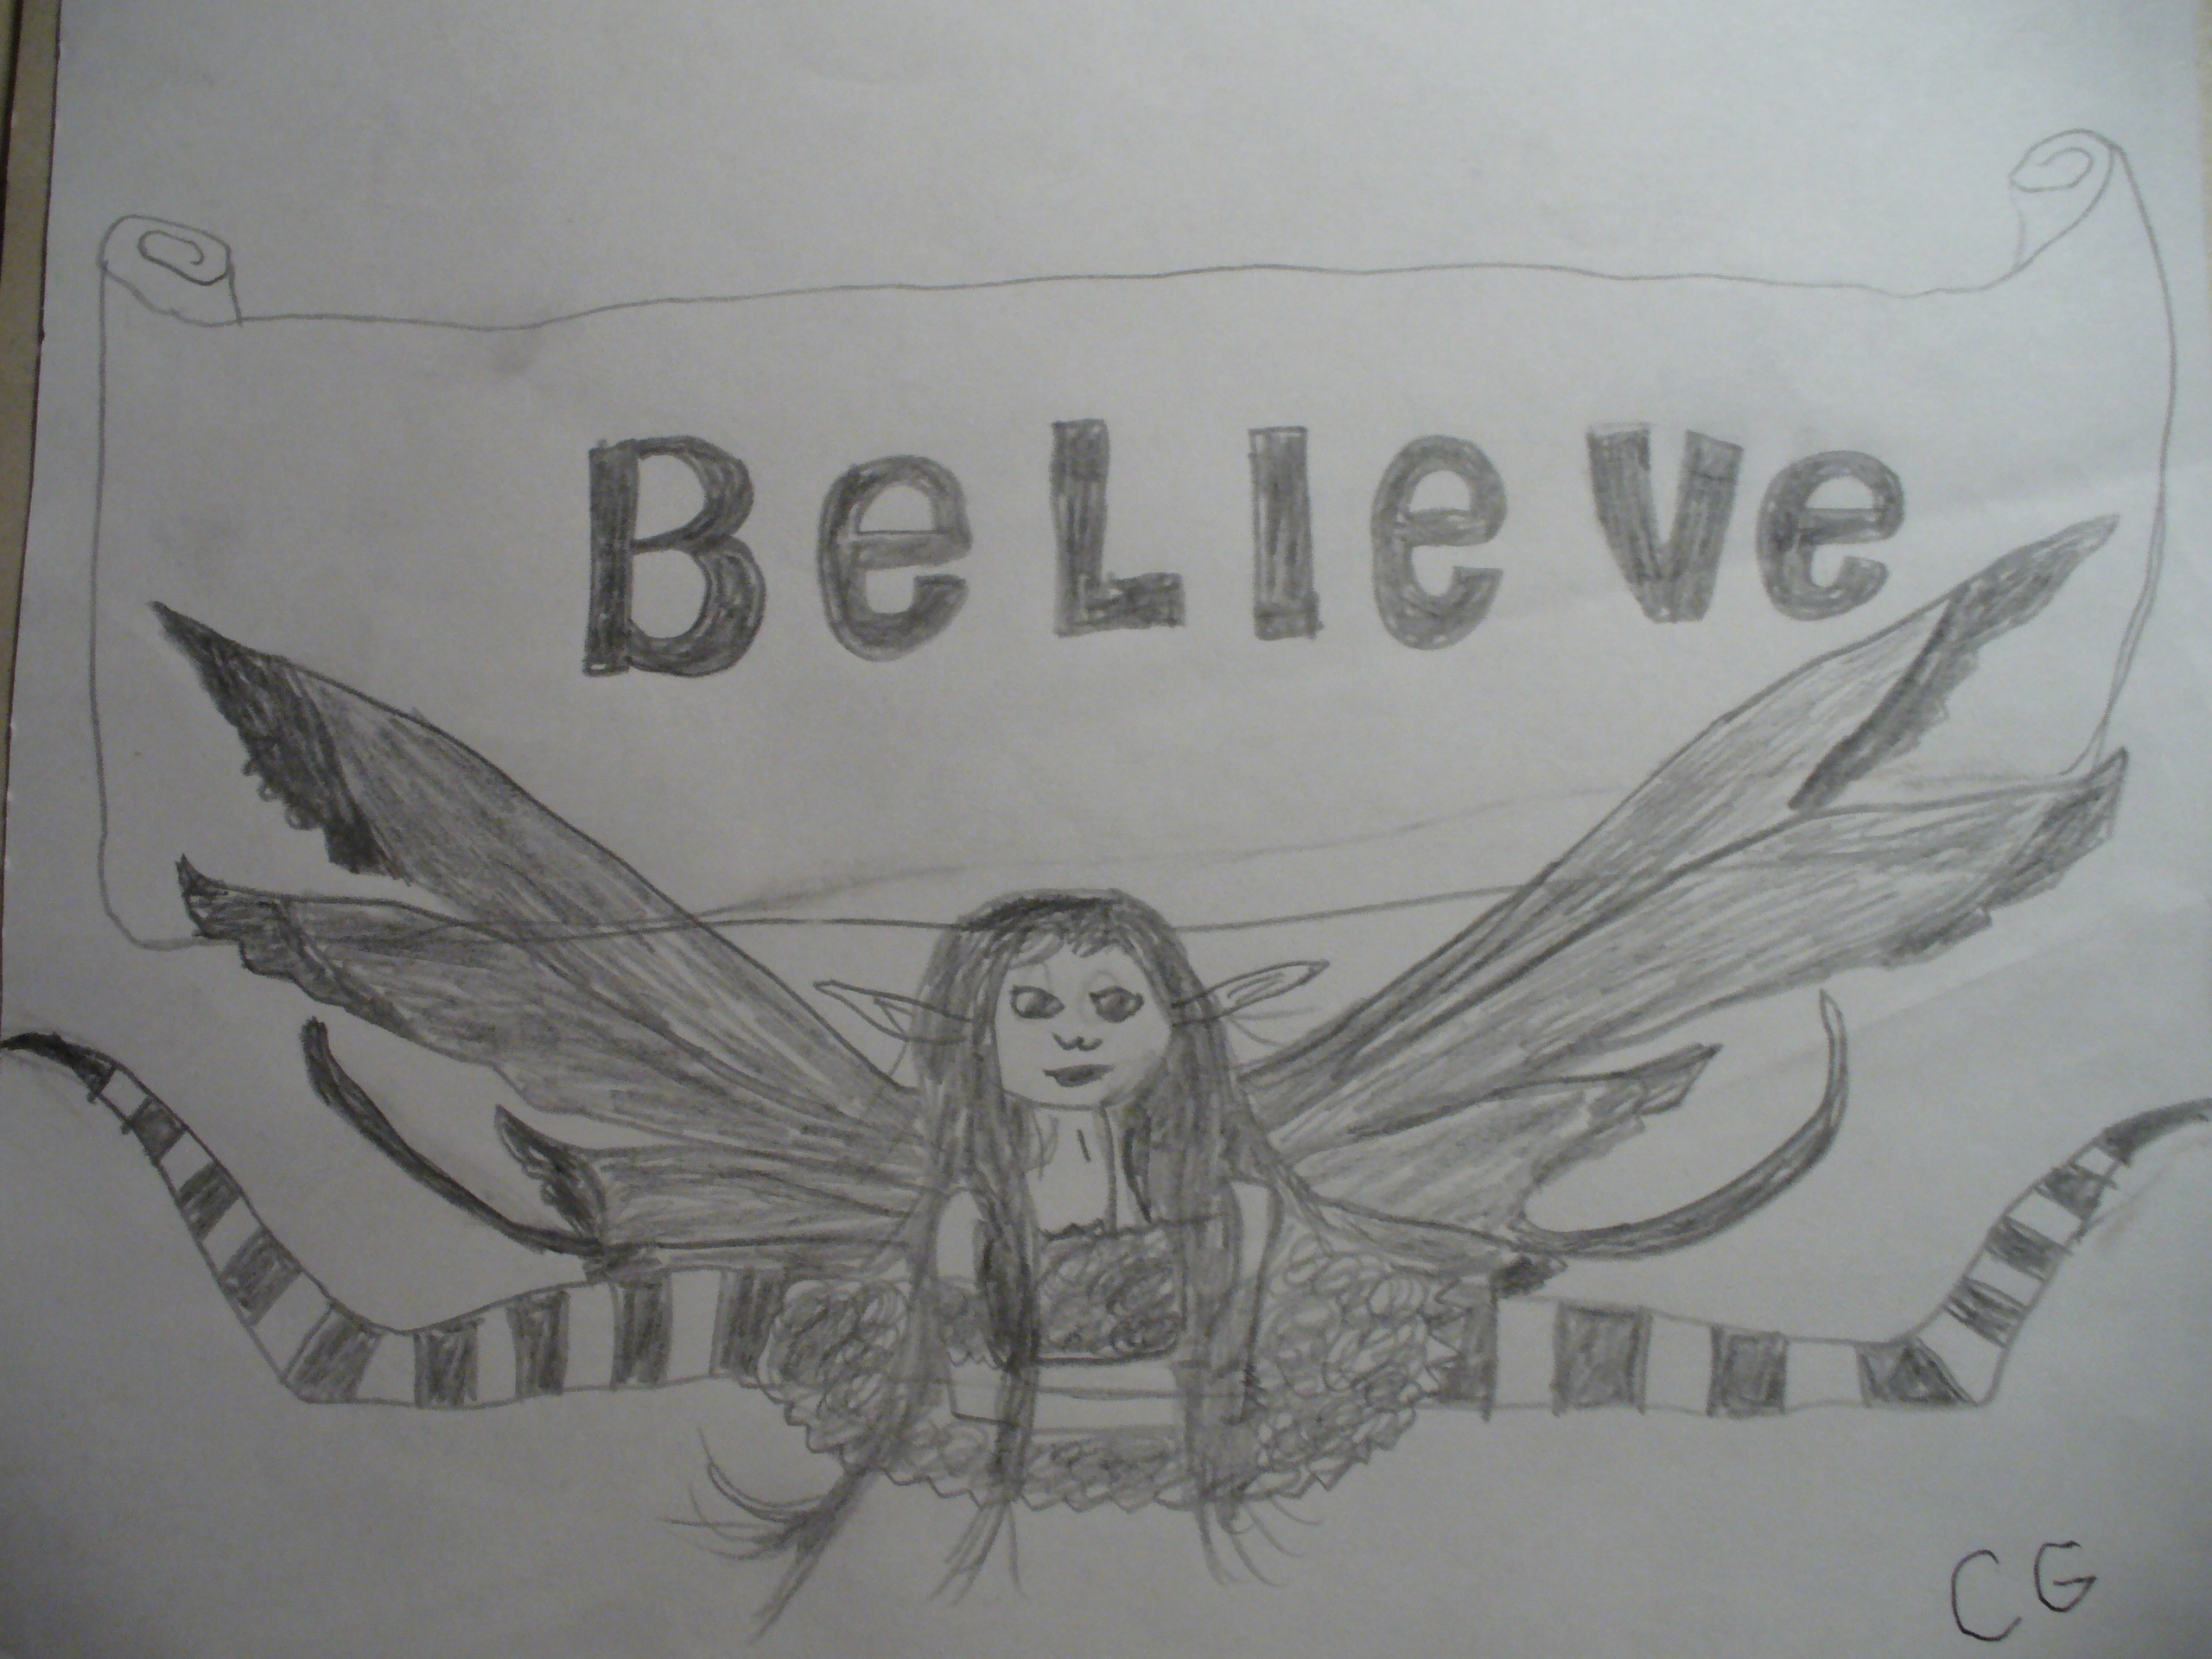 Believe by Cara